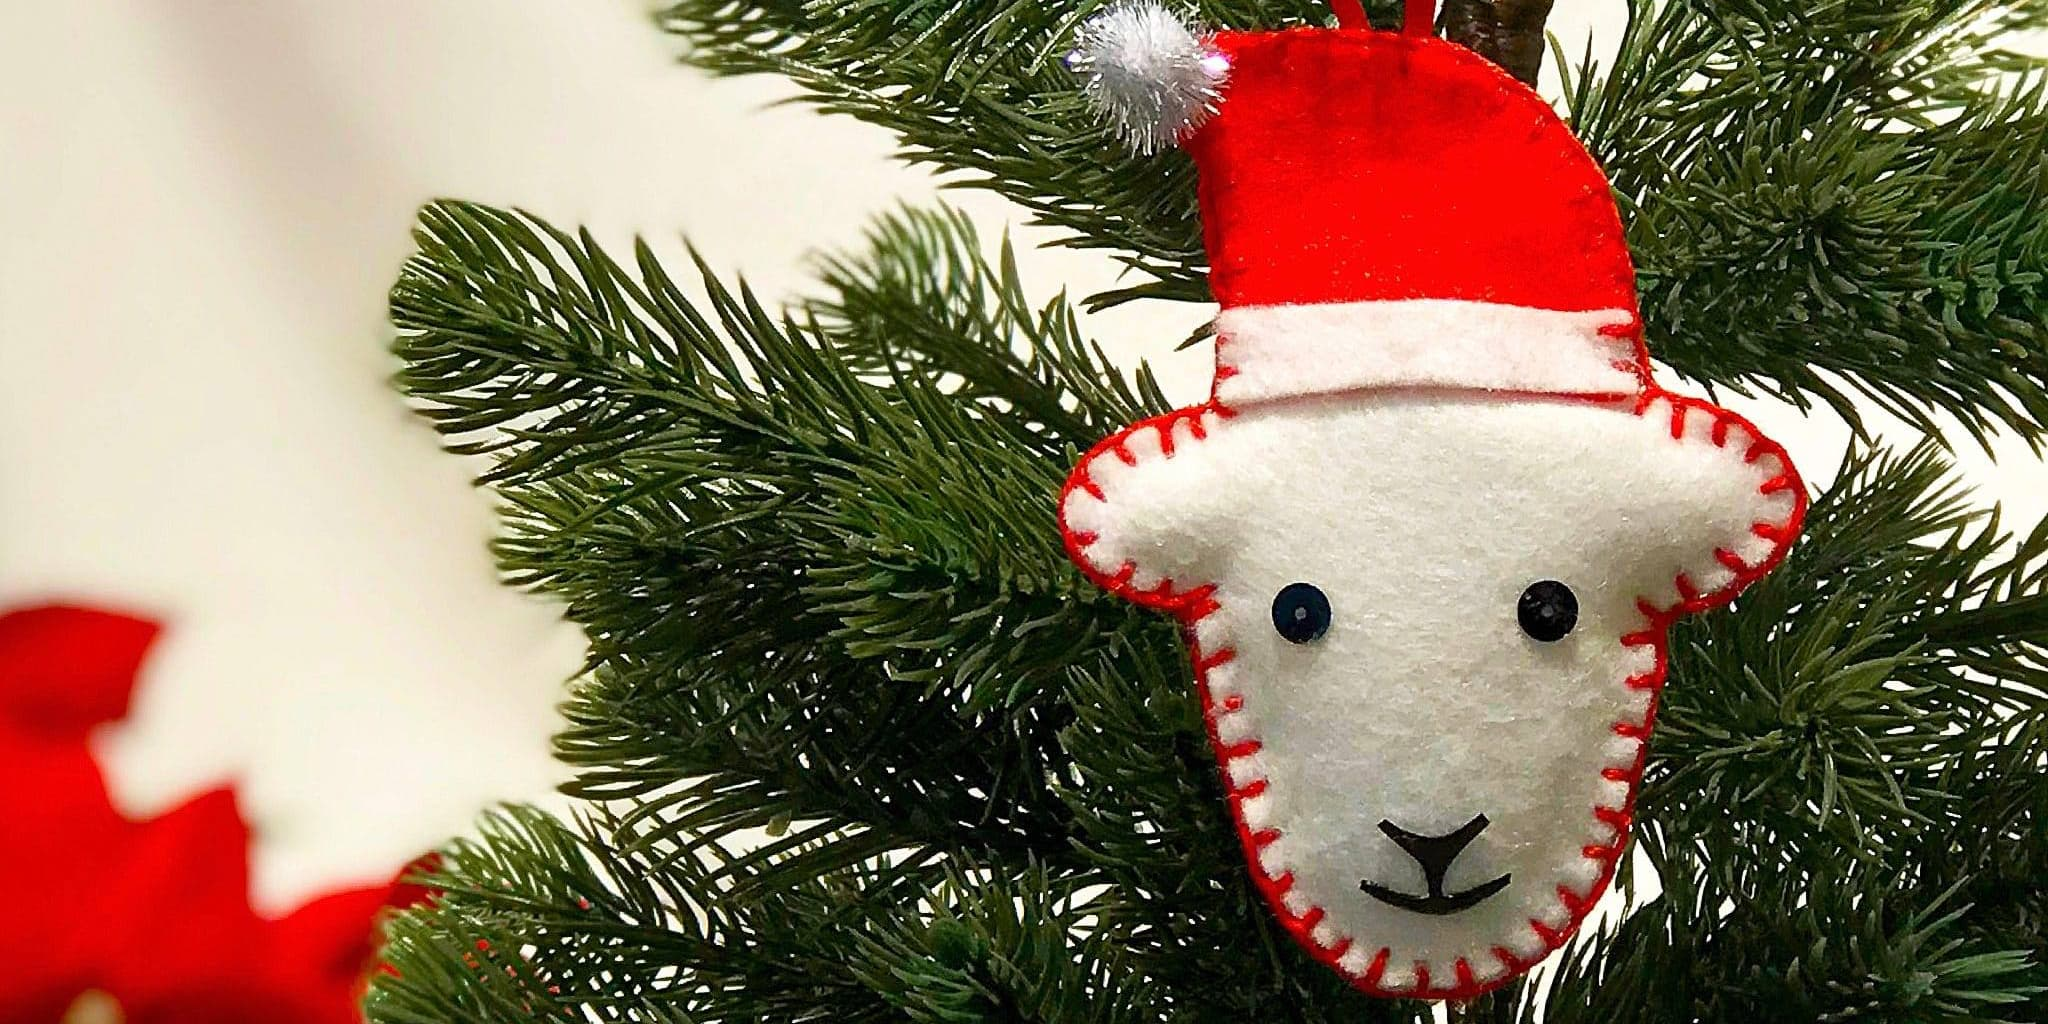 How To Make A Herdy Christmas Tree Decoration